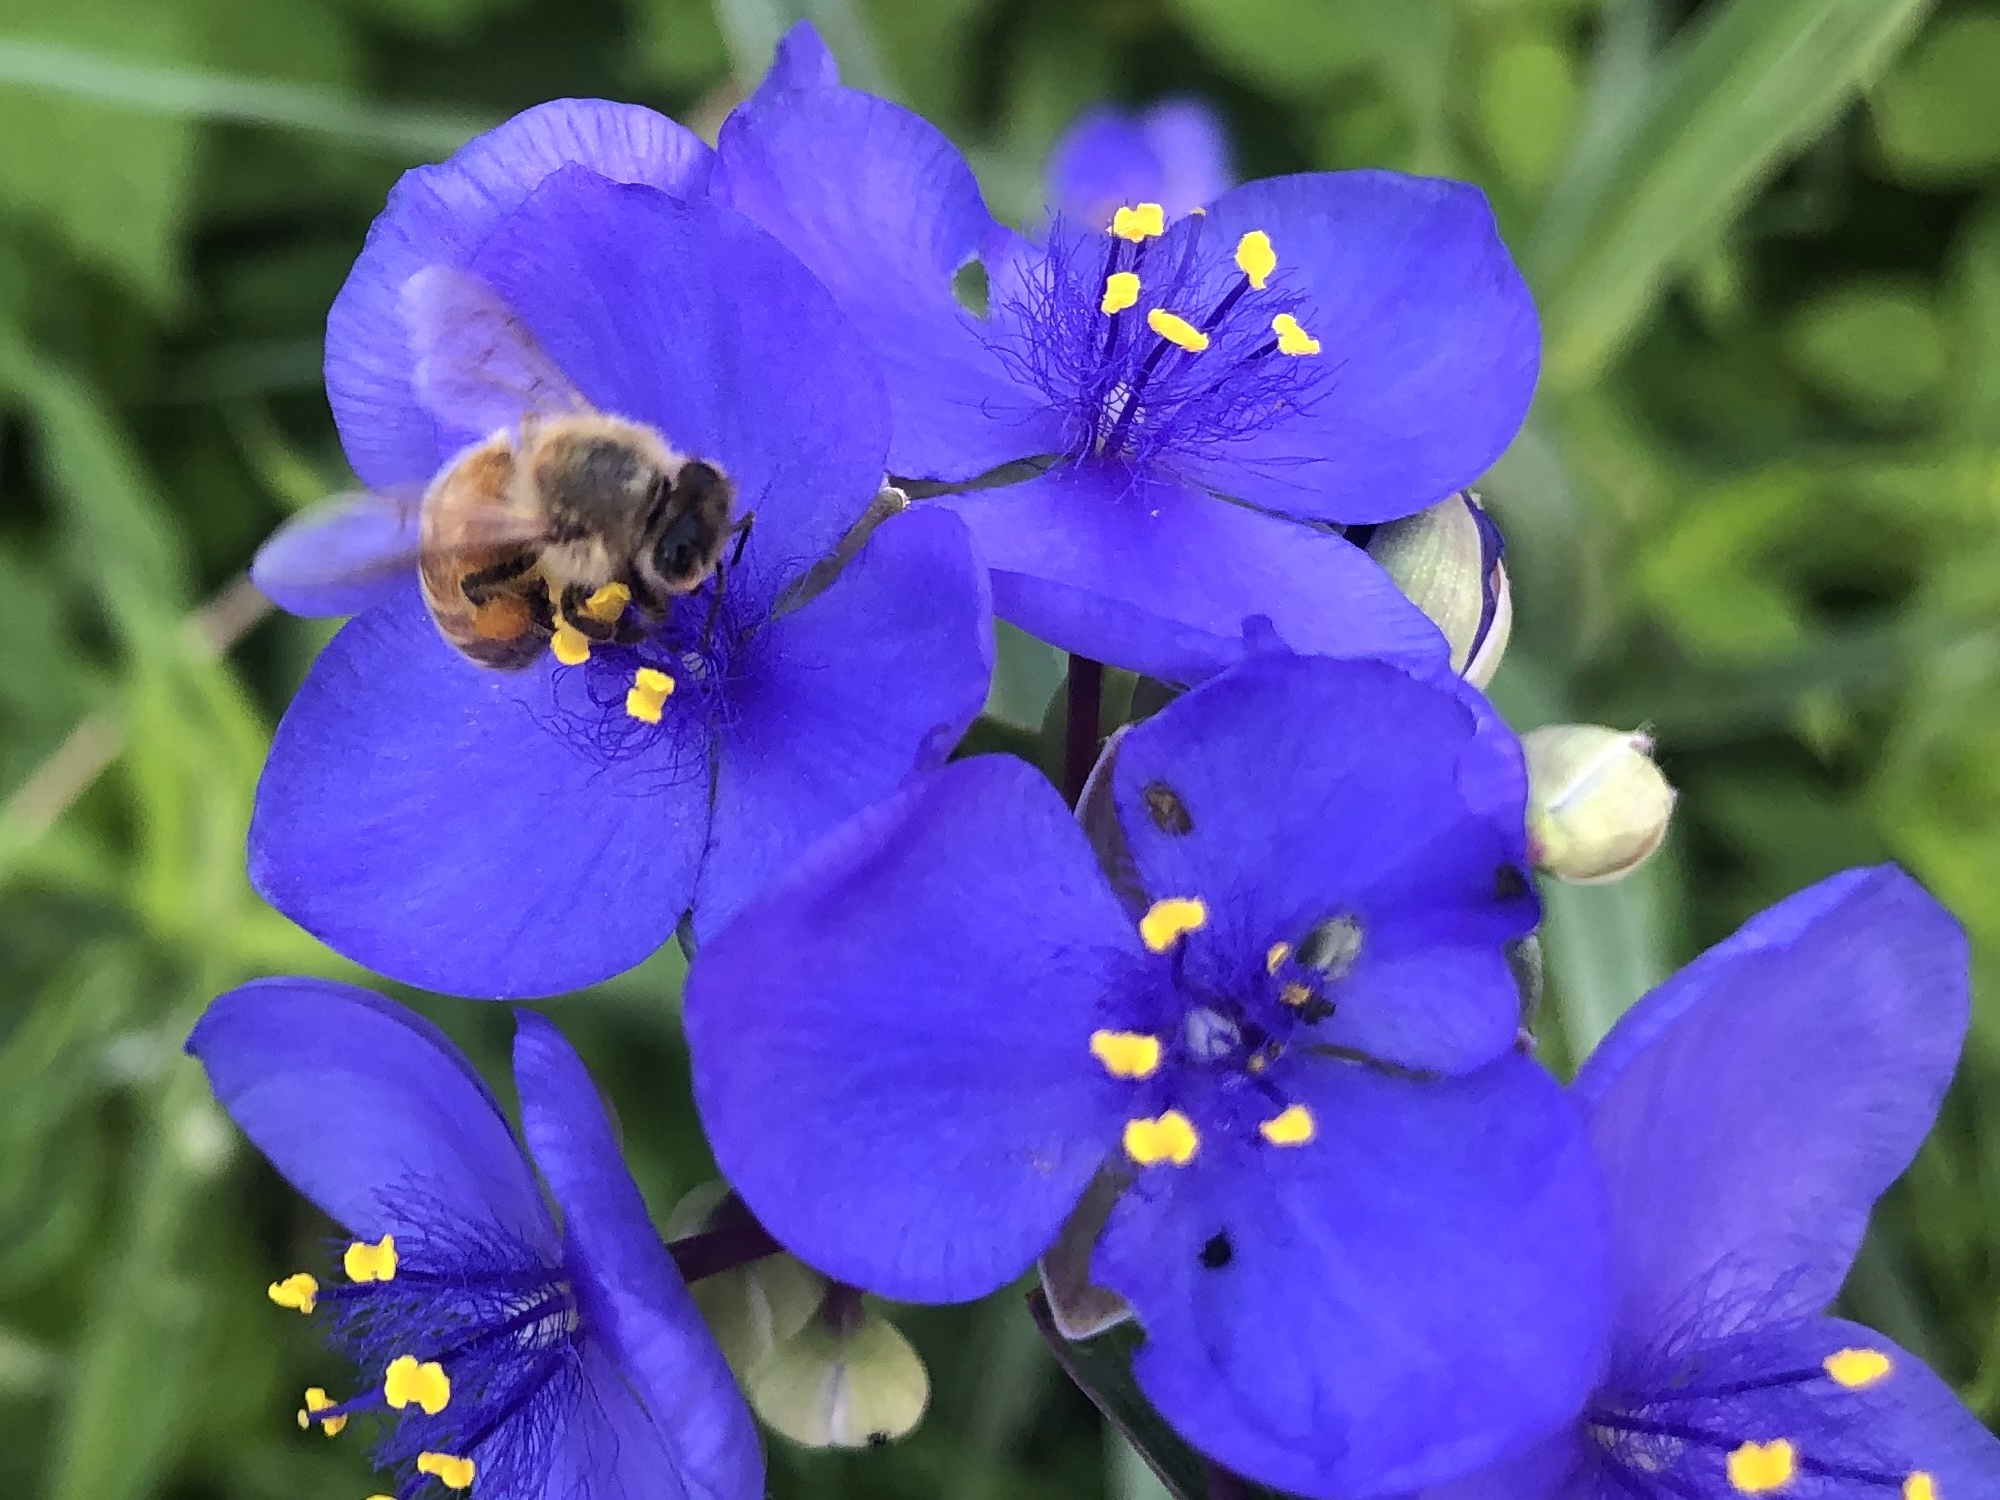 Honeybee on Spiderwort on June 9, 2020.